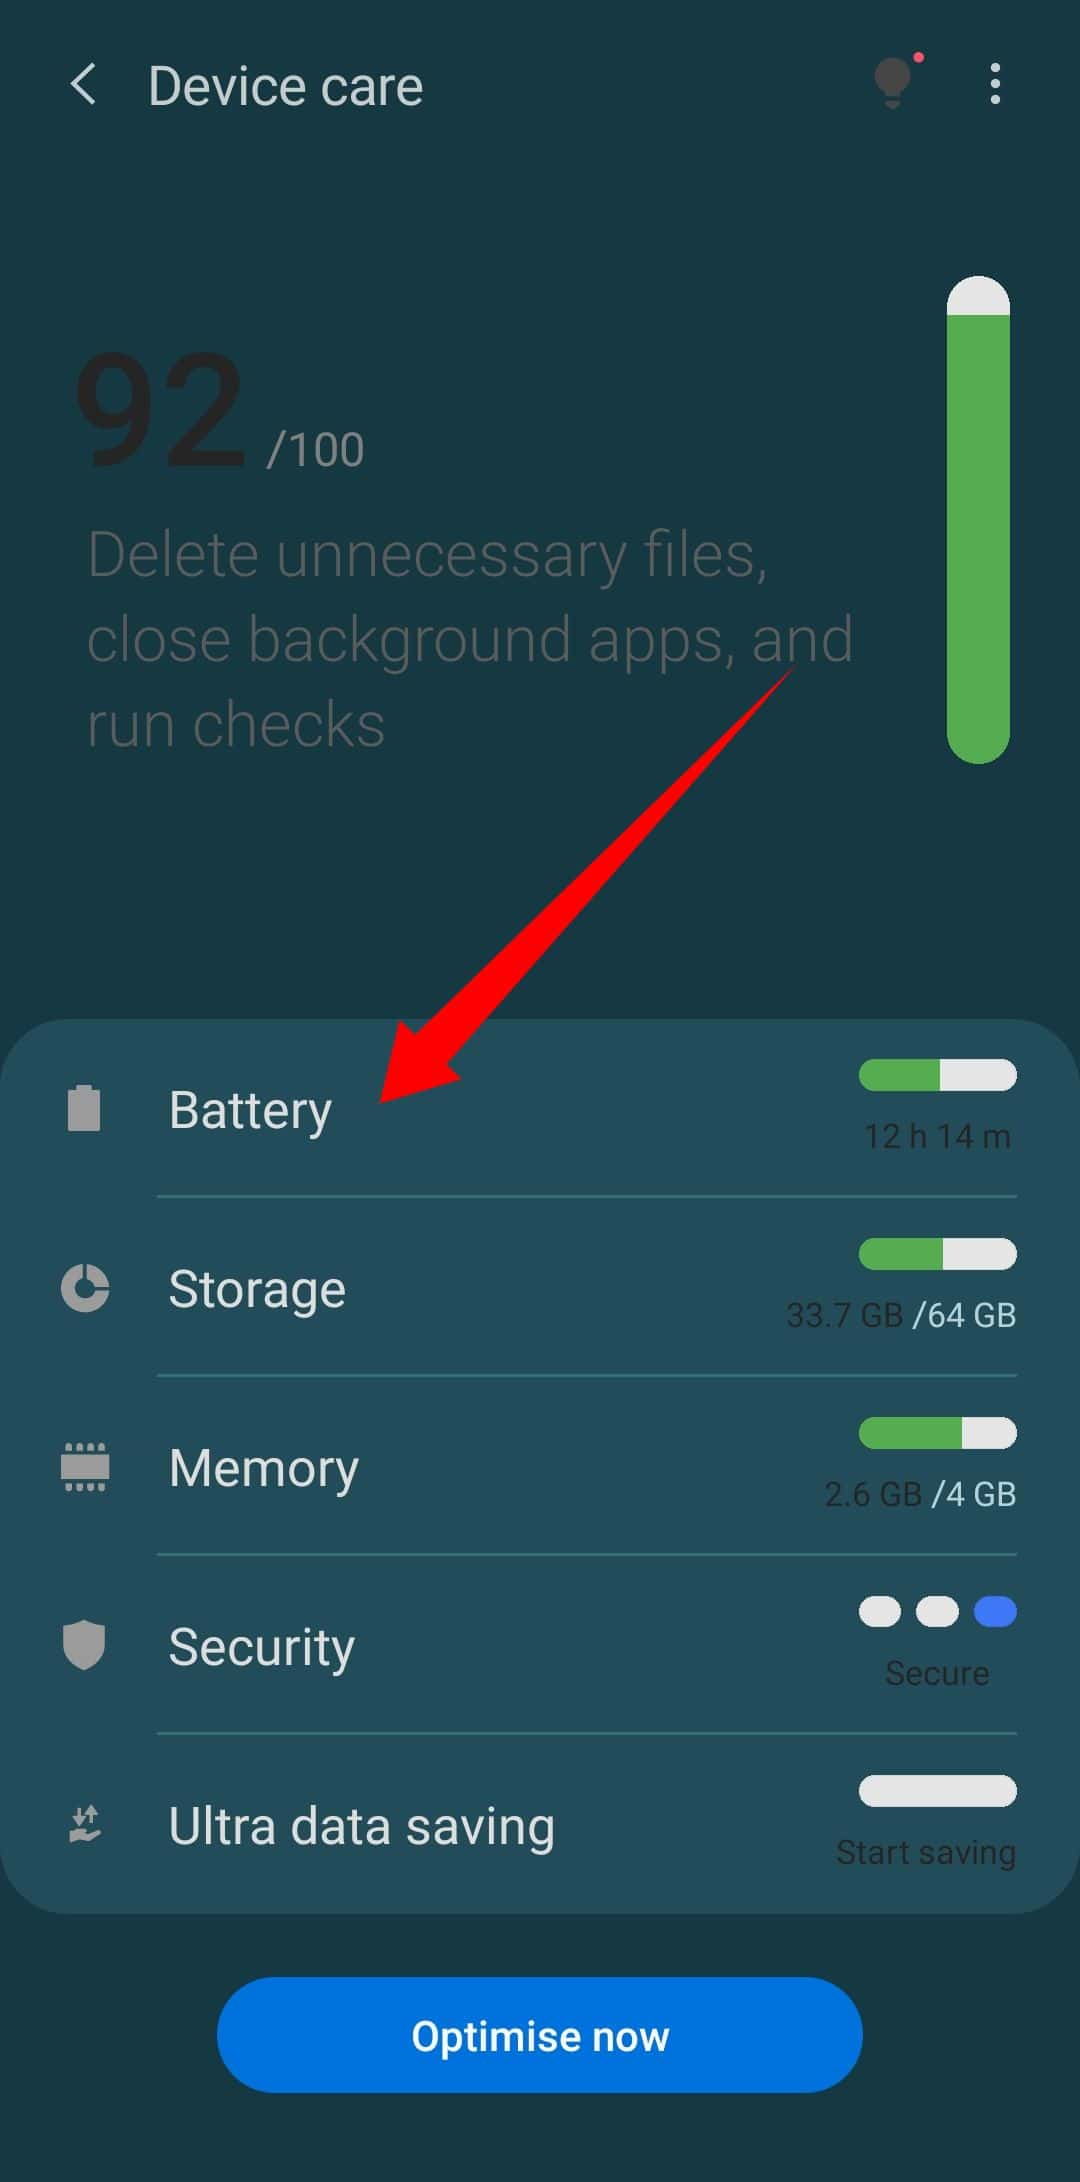 battery option in device care